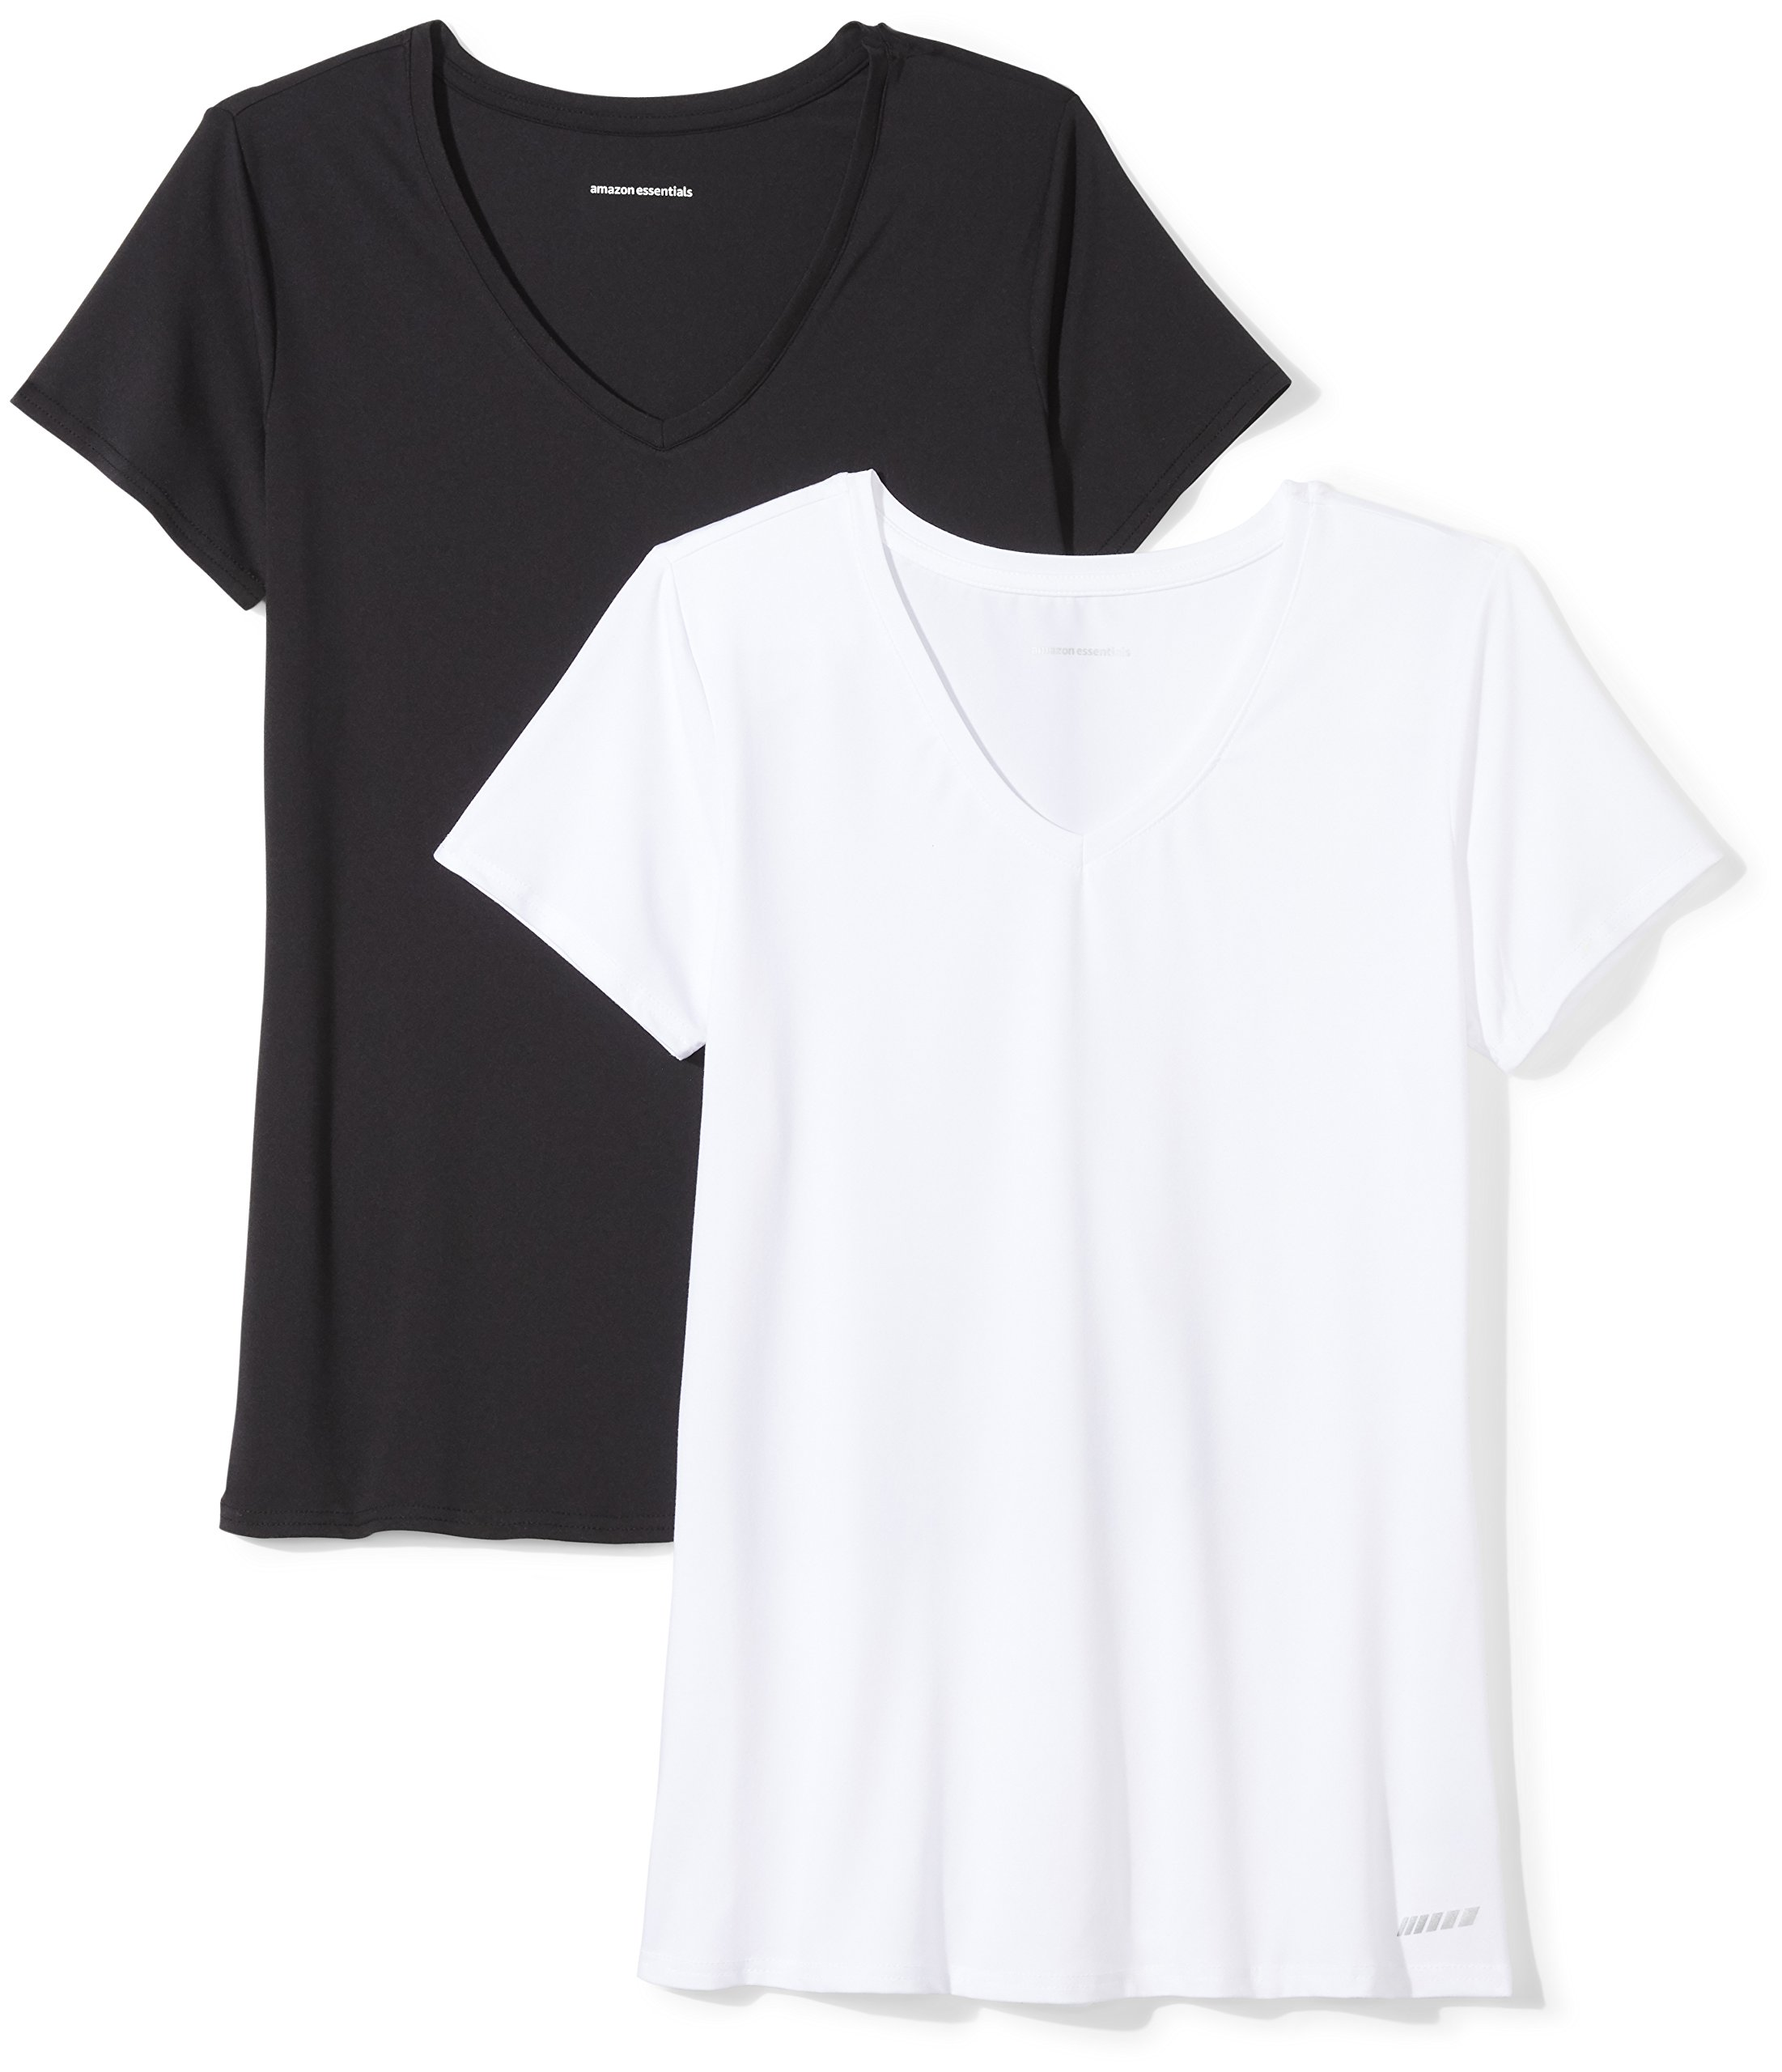 Amazon Essentials Women's 2-Pack Tech Stretch Short-Sleeve V-Neck T-Shirt, Black/White, Medium